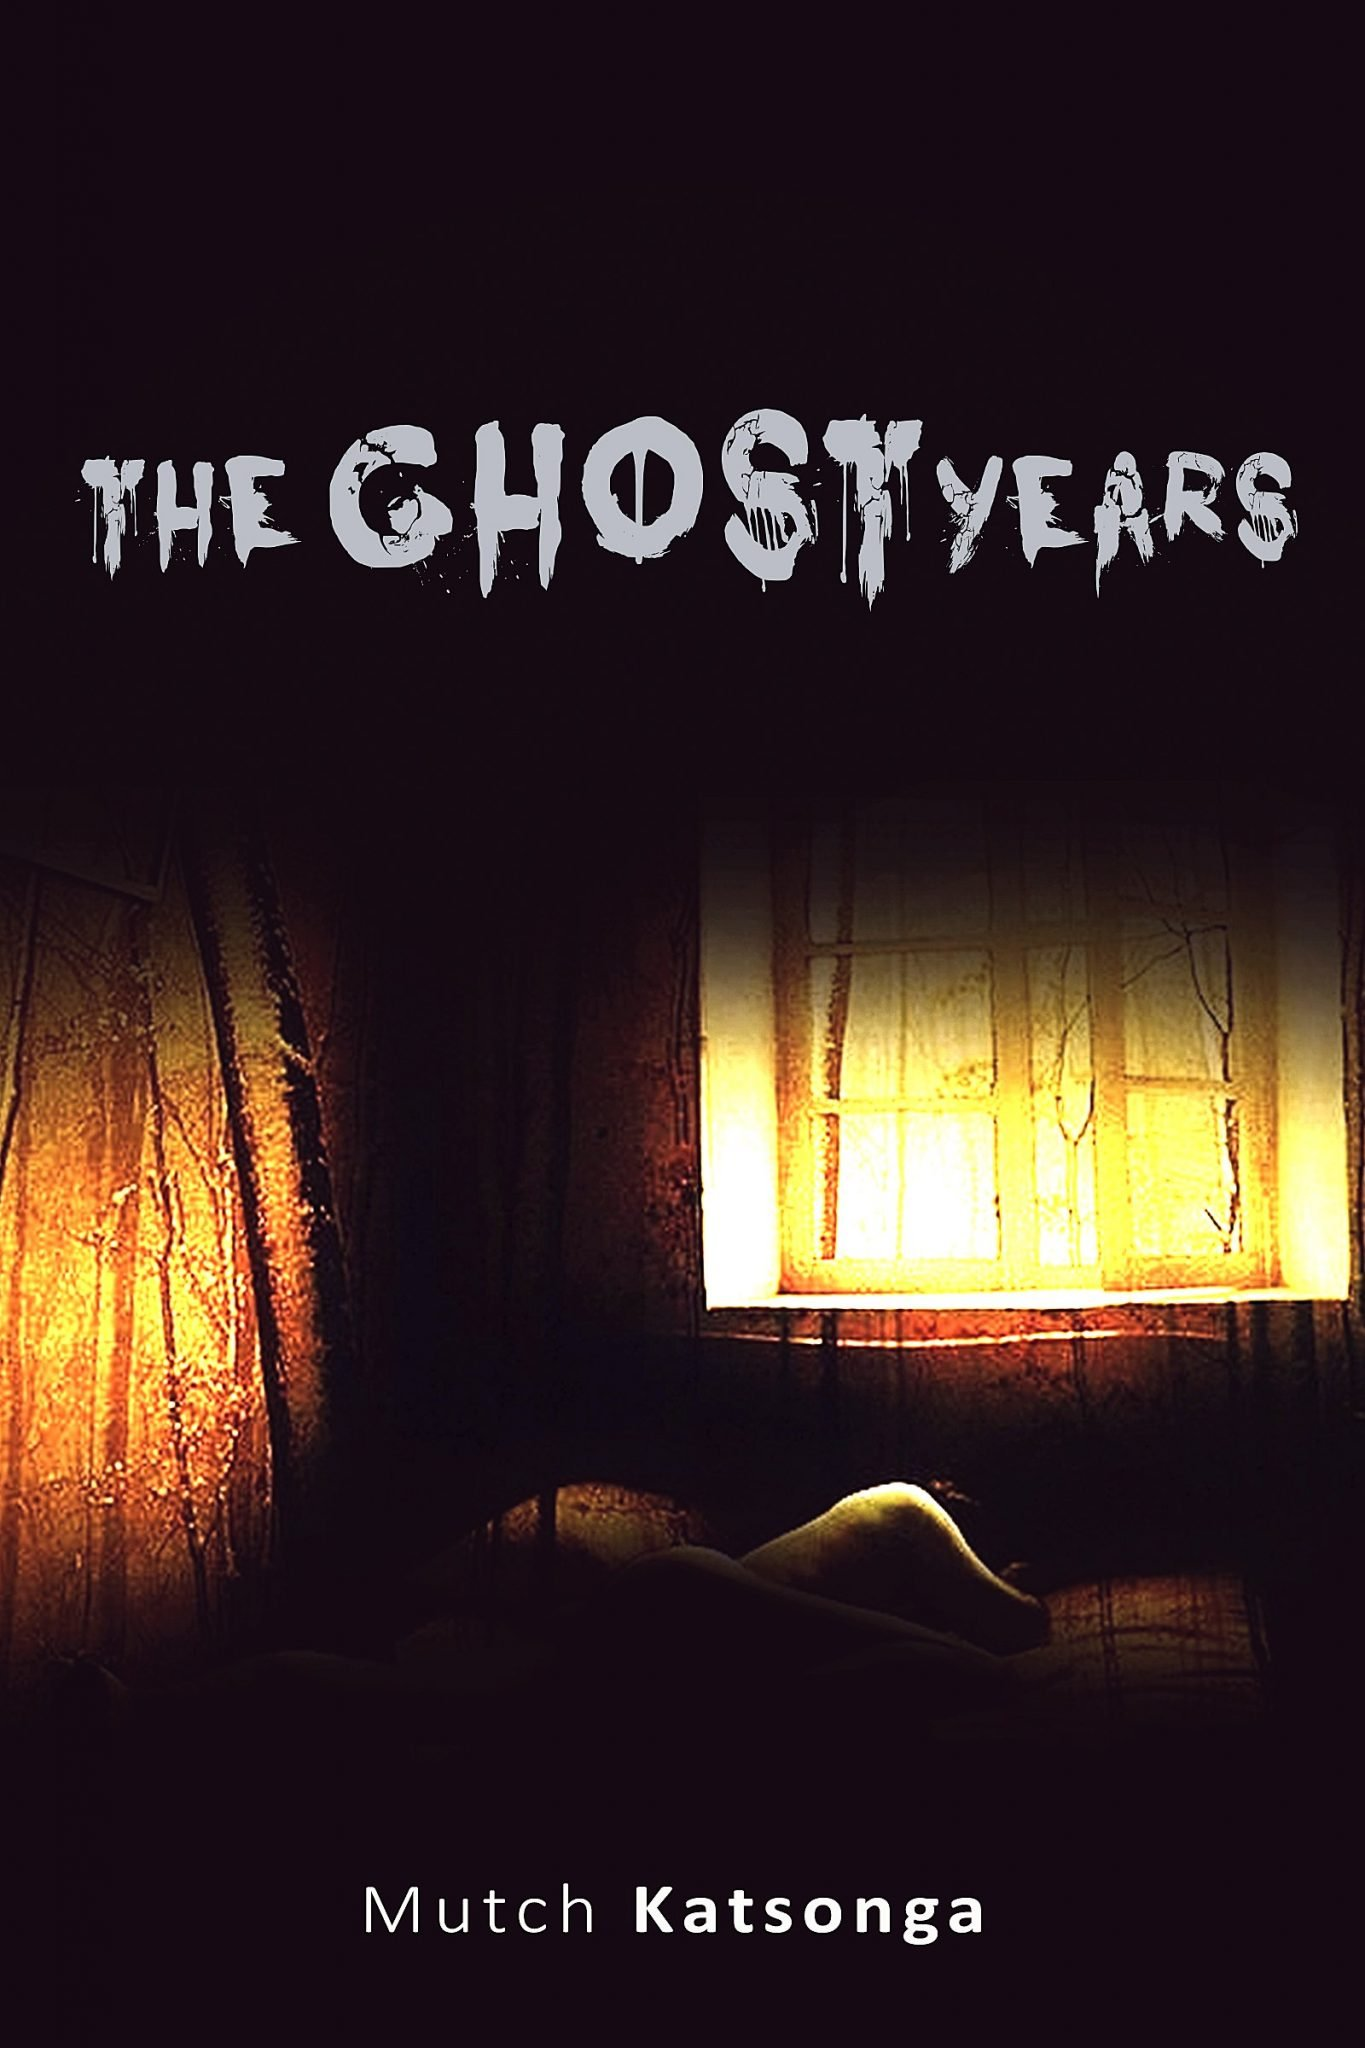 The Ghost Years by Mutch Katsonga